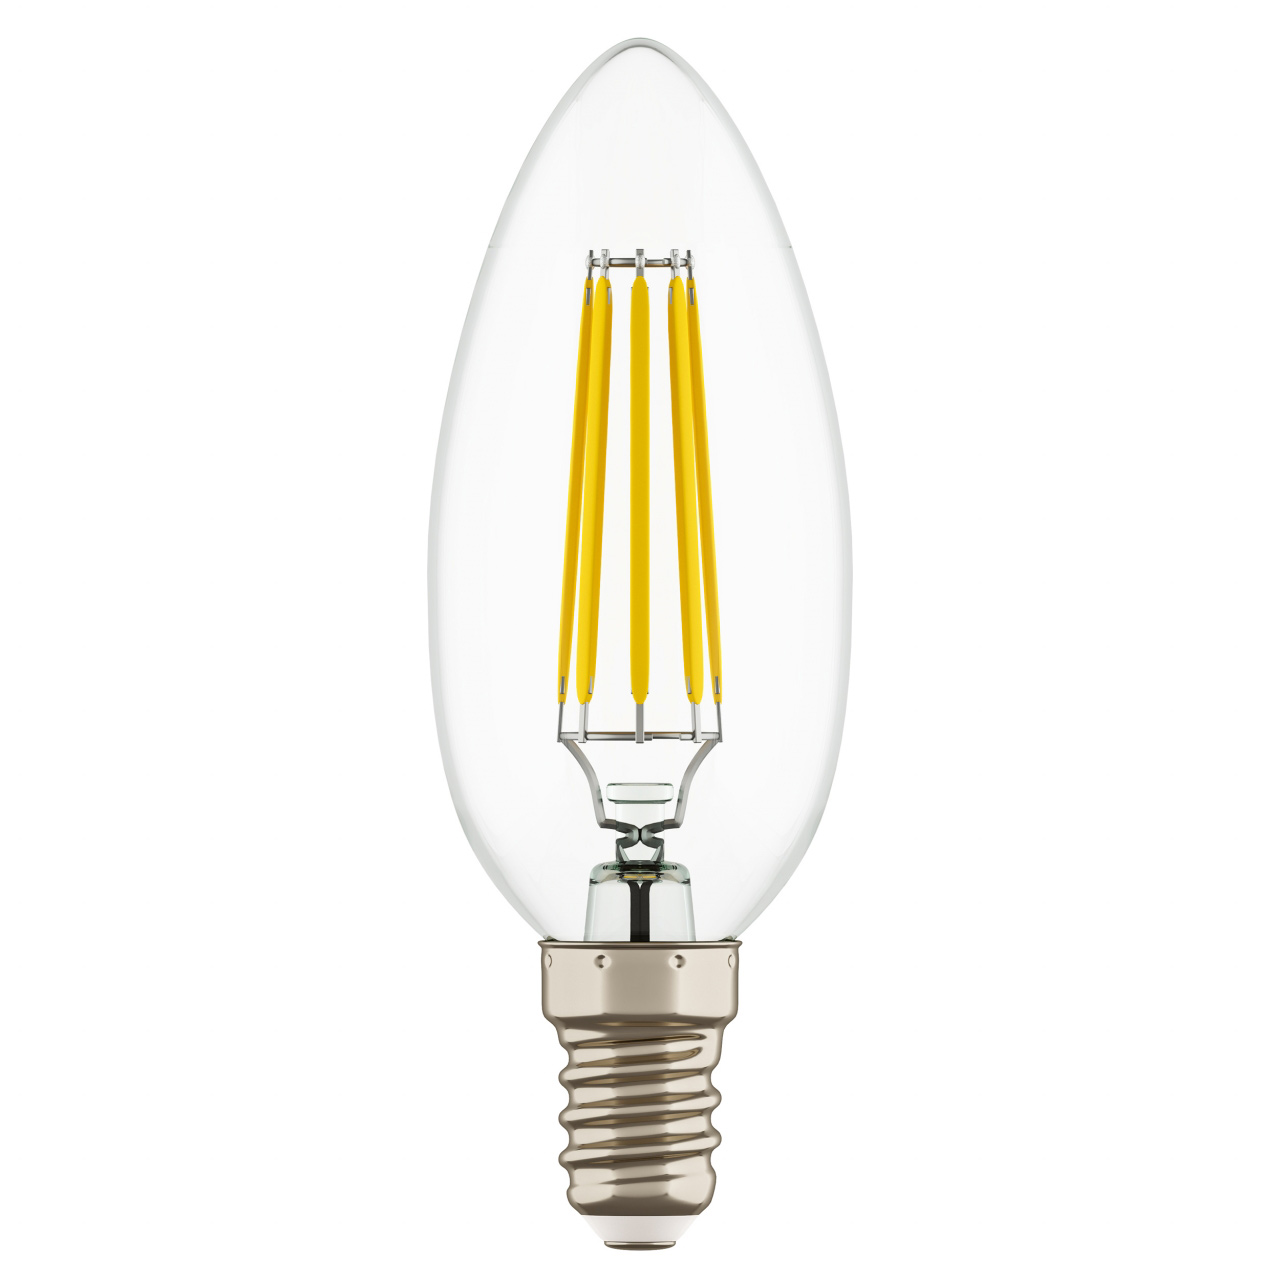 Лампа LED Filament 220V C35 E14 6W=65W 400-430LM 360G CL 3000K 30000H Lightstar 933502